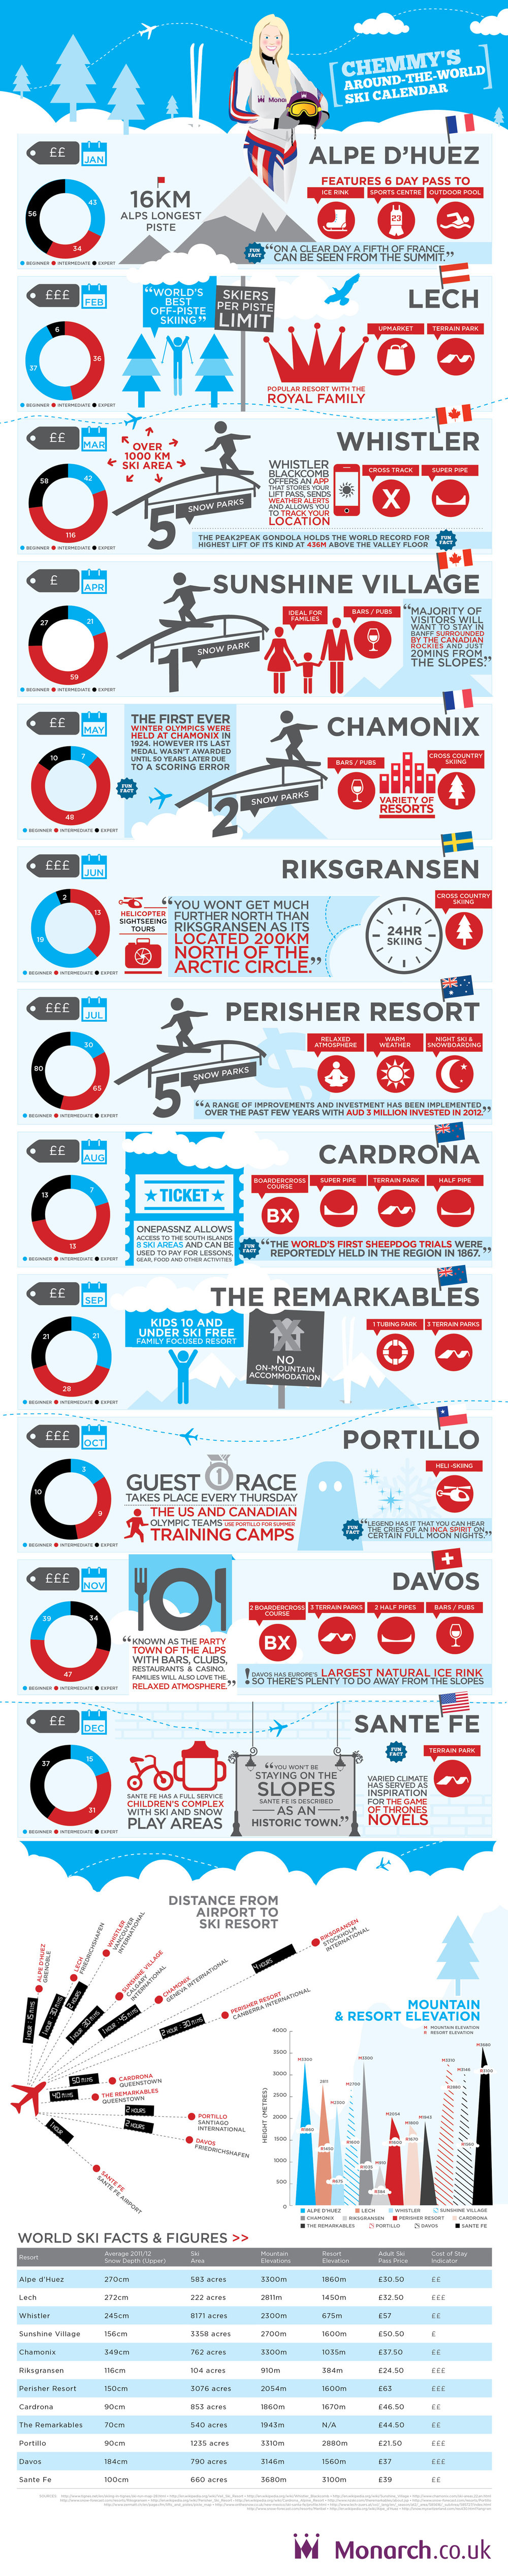 Our World Ski Calendar – Seasonal Ski Resorts around the World infographic